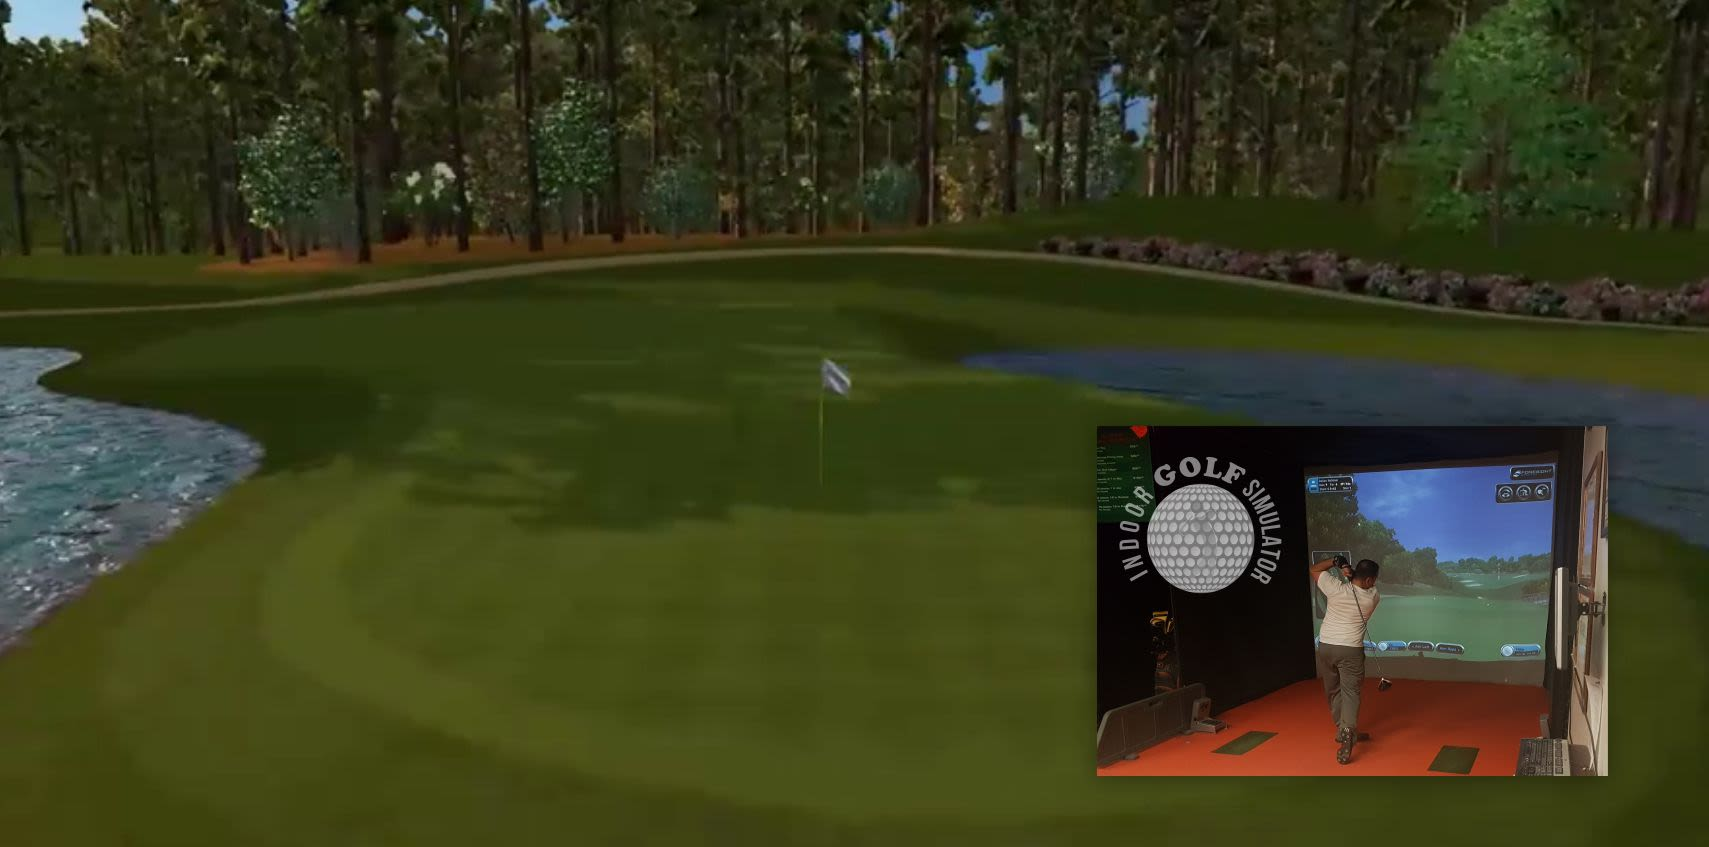 4k hd golf simulators 54 courses